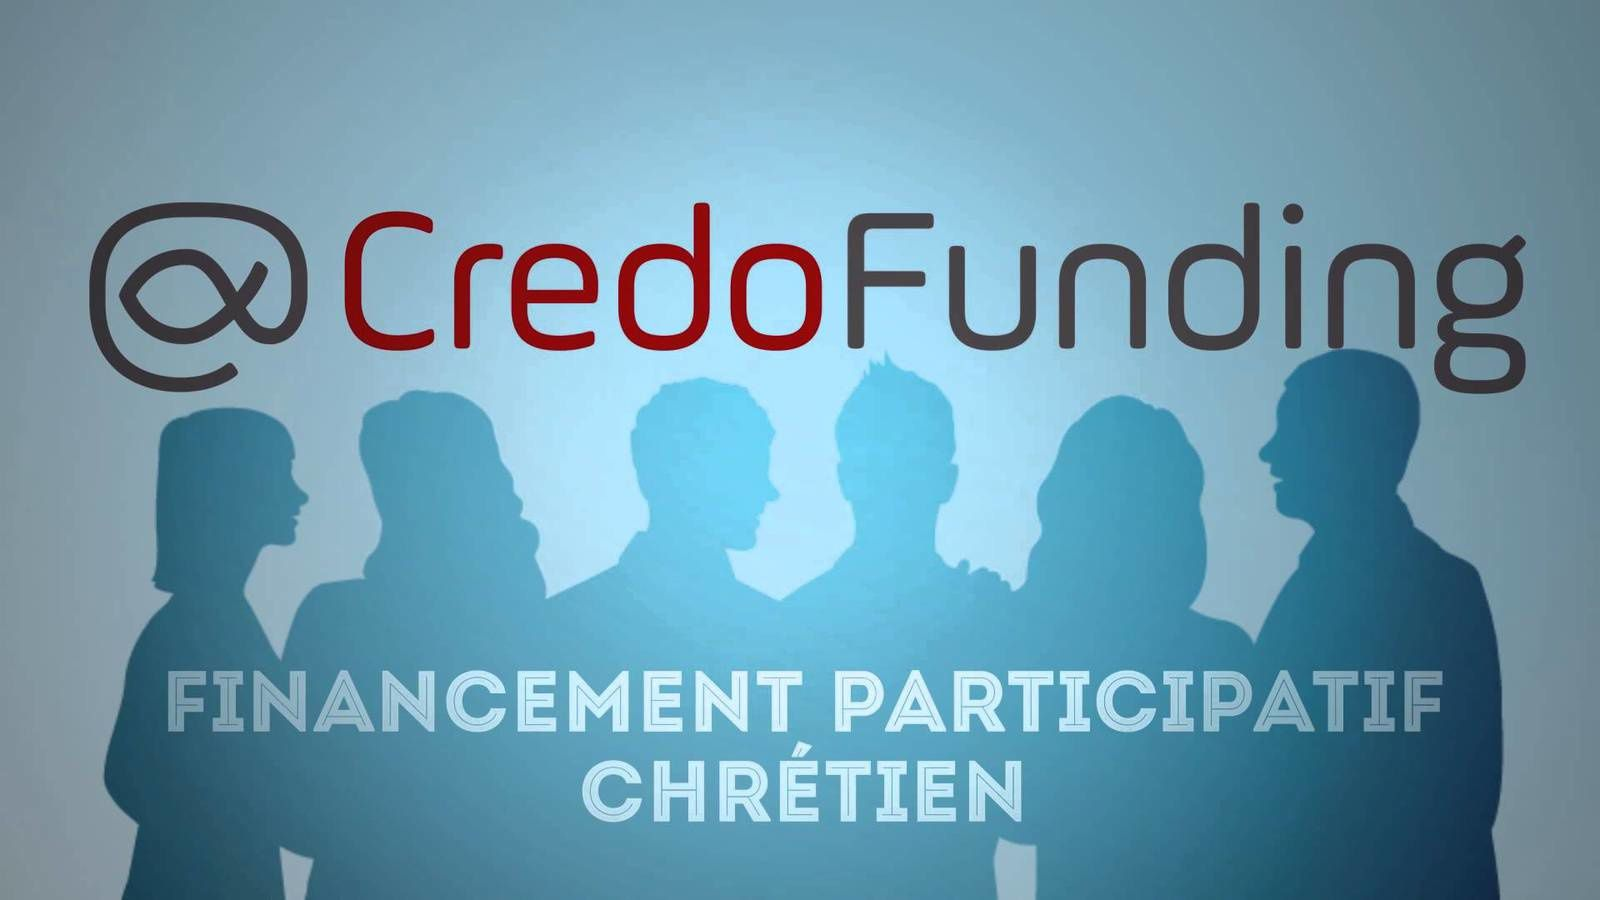 Initiatives: le Crowd-funding chrétien